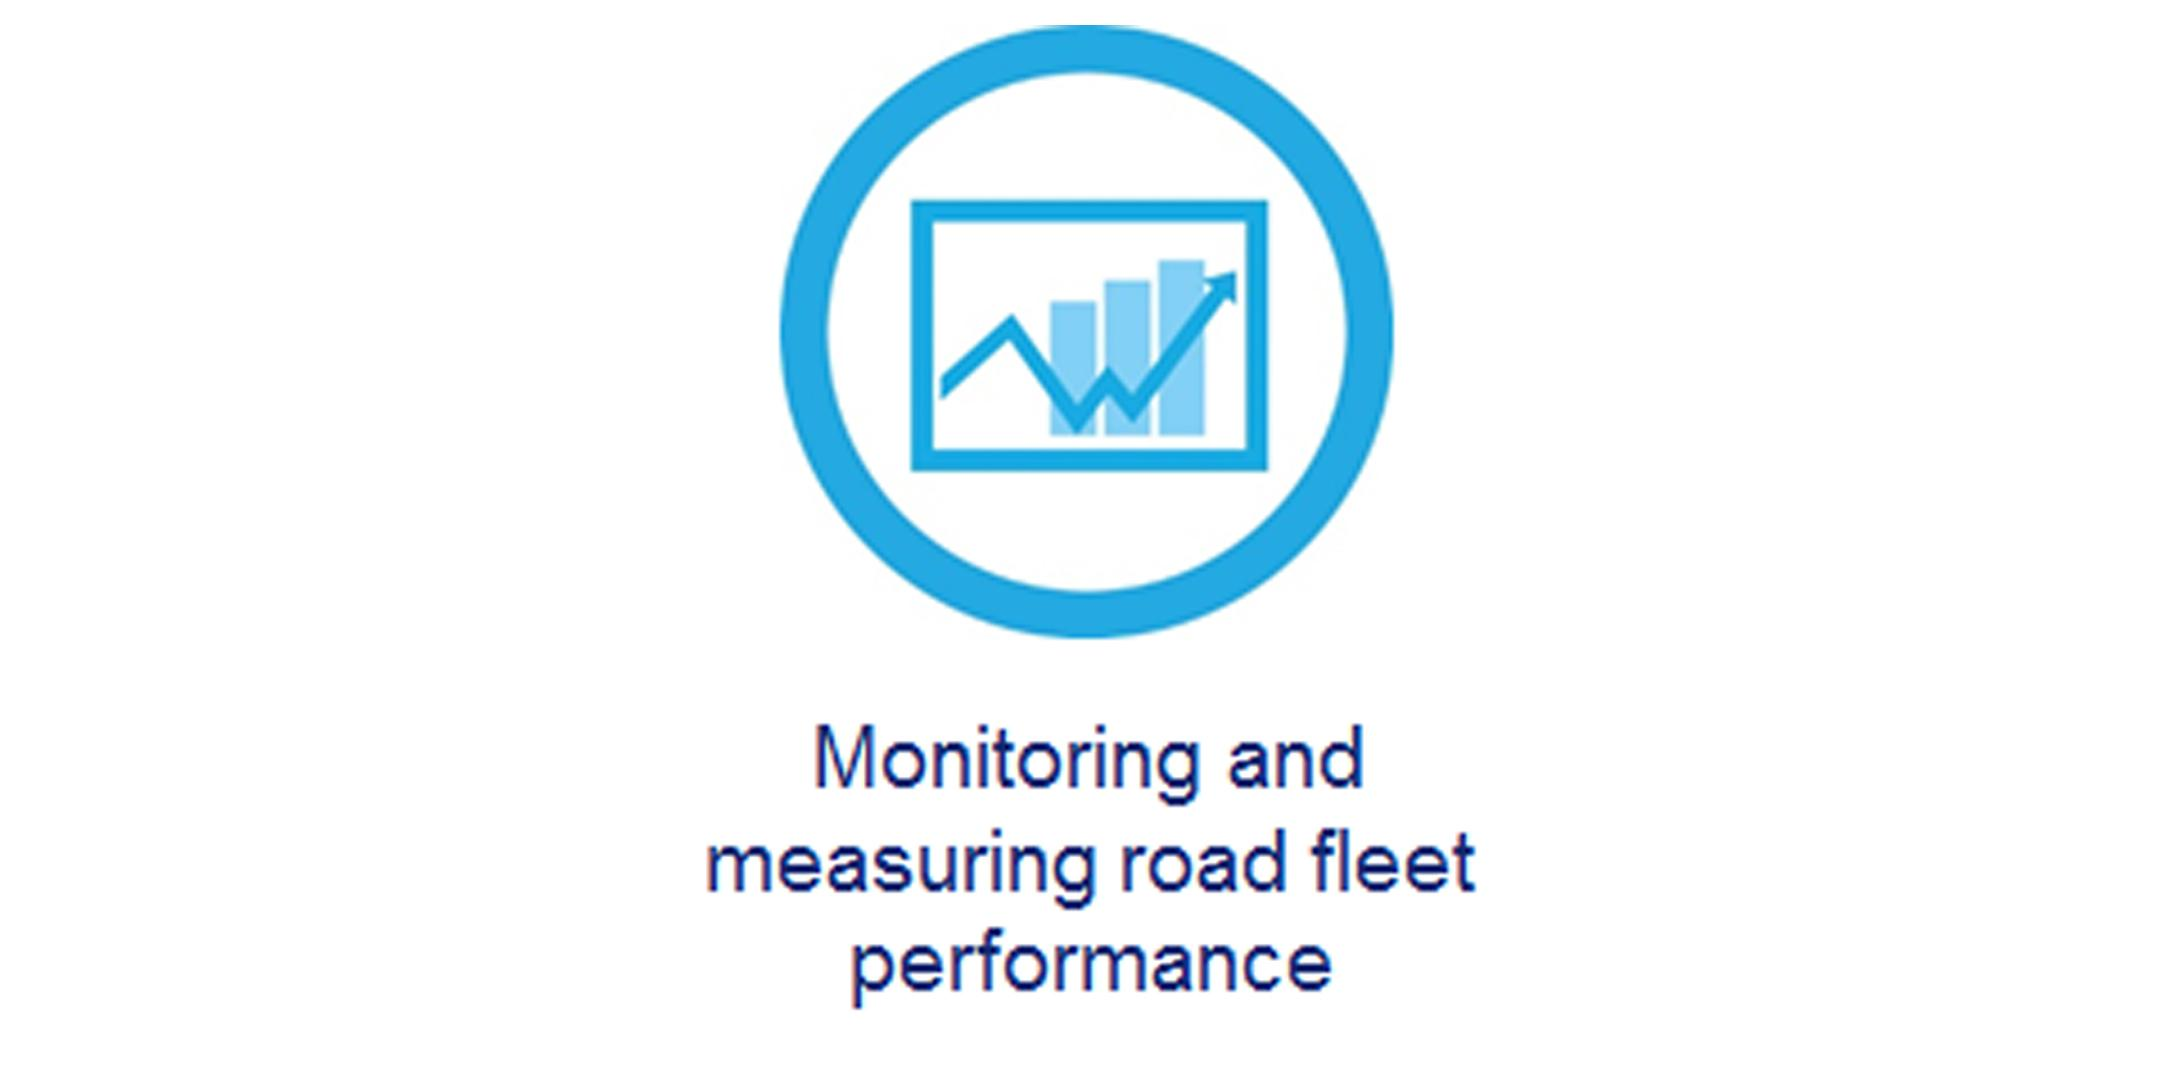 9 - Monitoring and measuring road fleet perfo